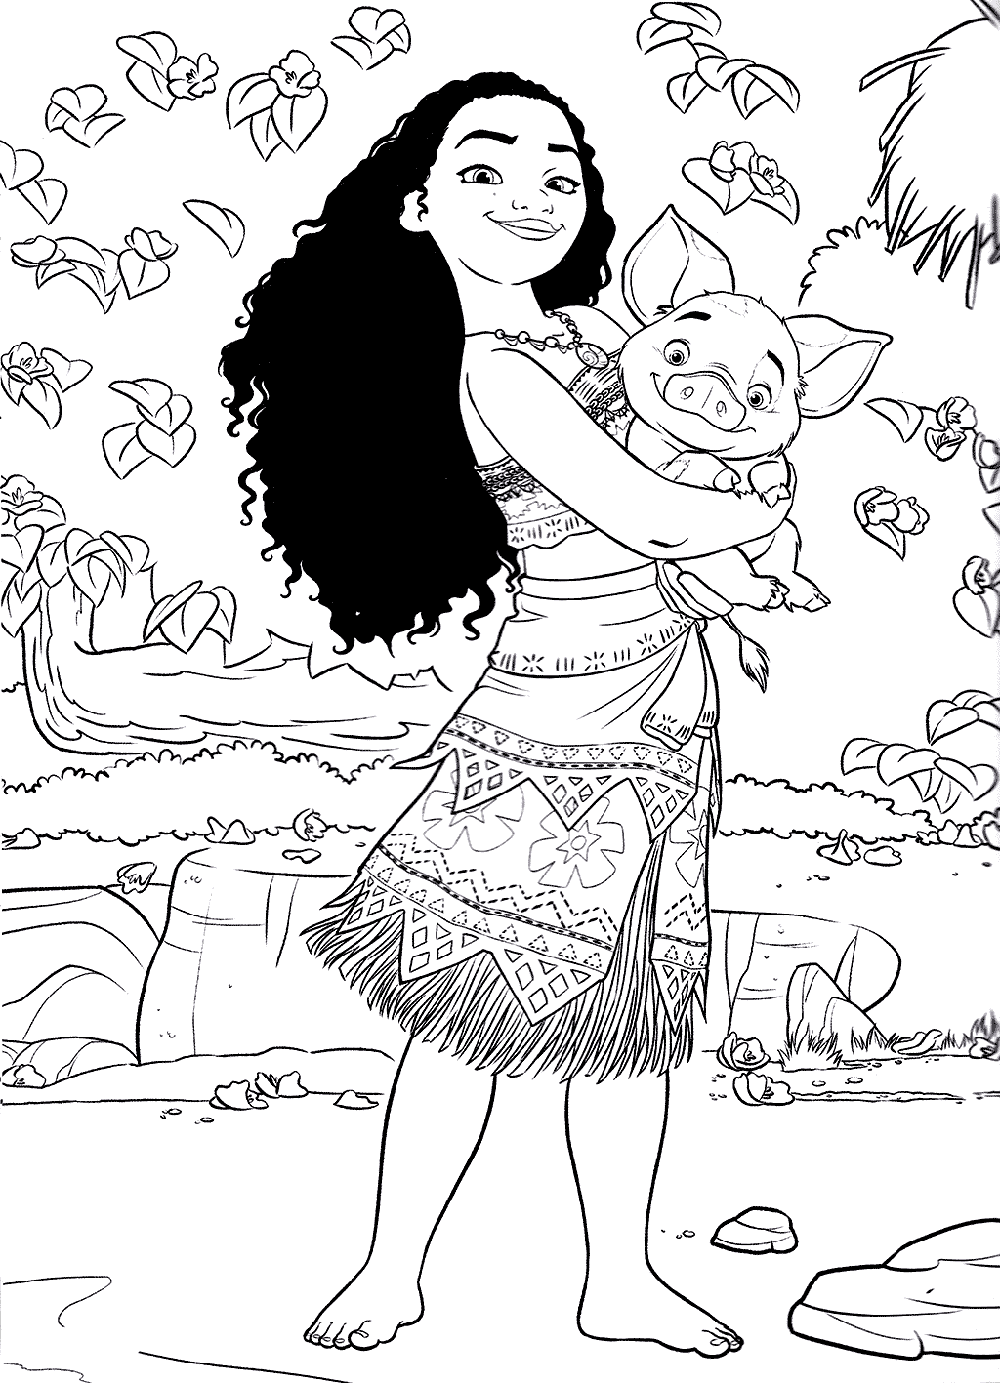 Summer Moana Coloring Book Educative Printable Moana Coloring Moana Coloring Pages Disney Coloring Pages